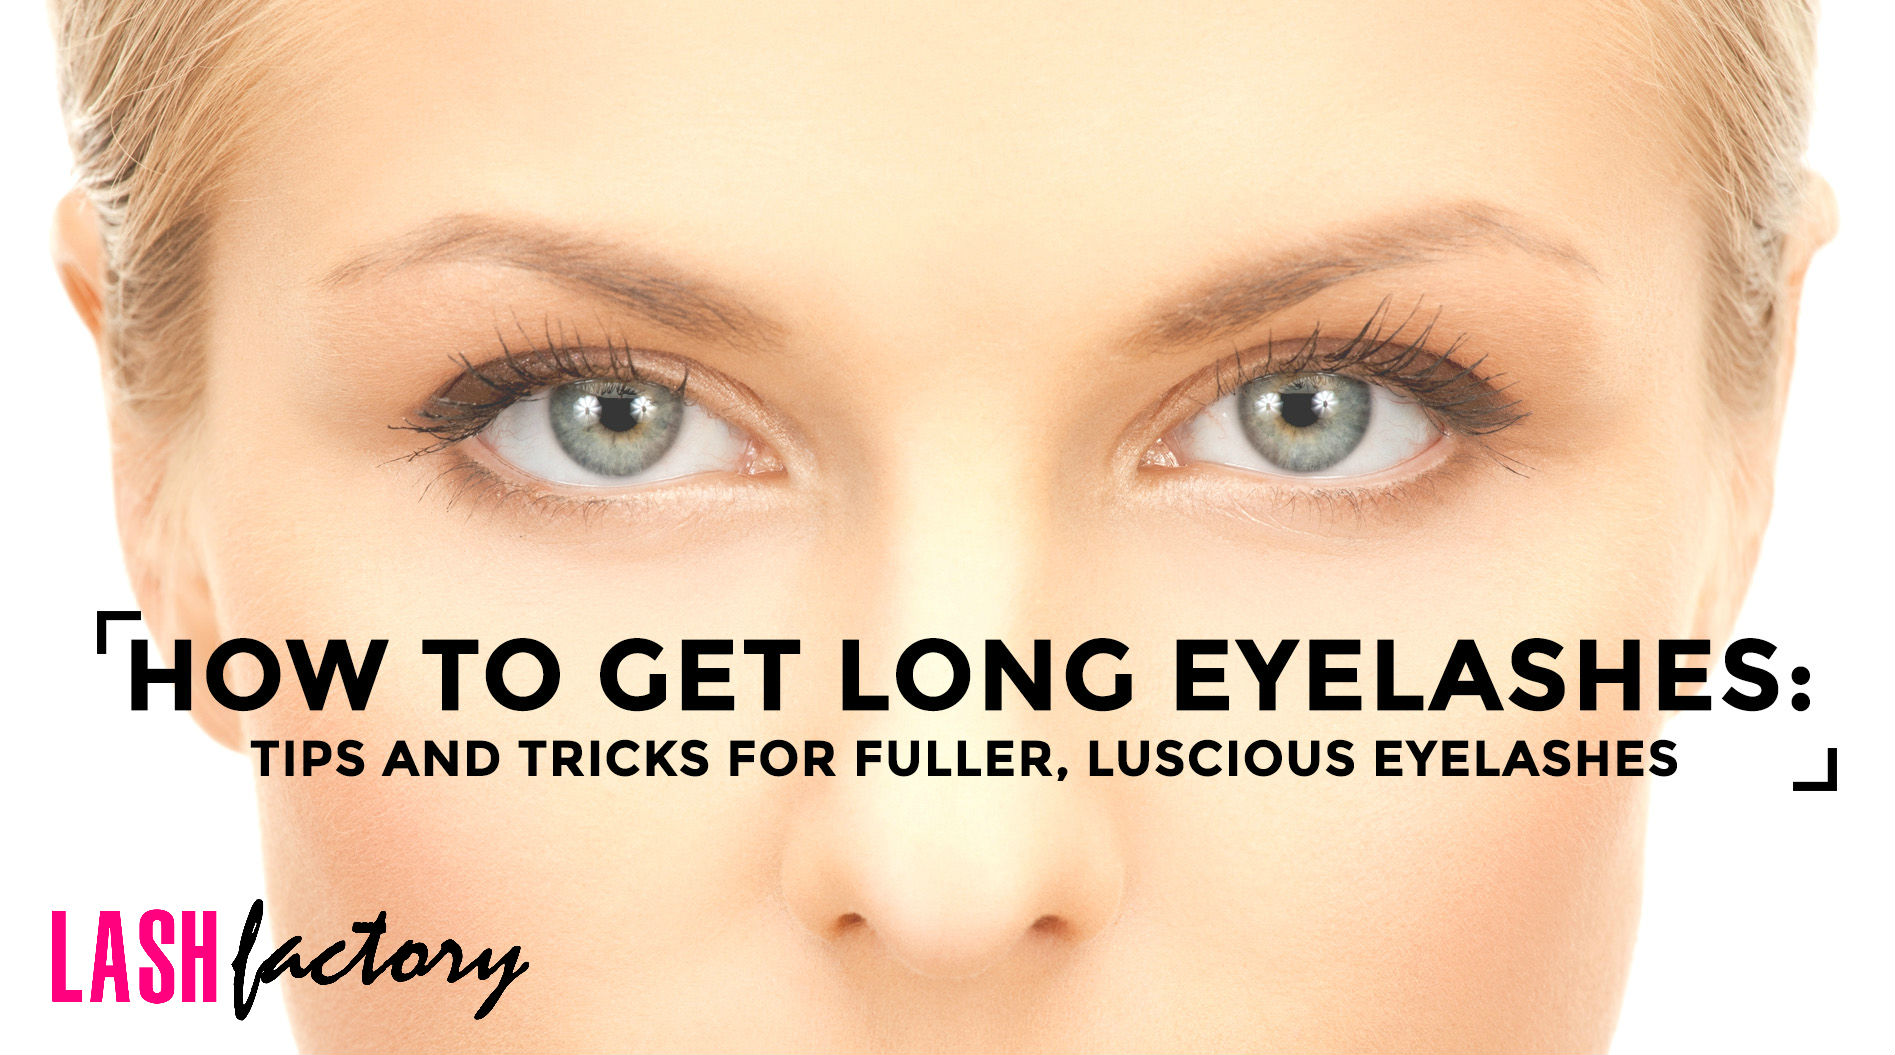 7 Tips and Tricks to make Eyelashes Longer and Thicker